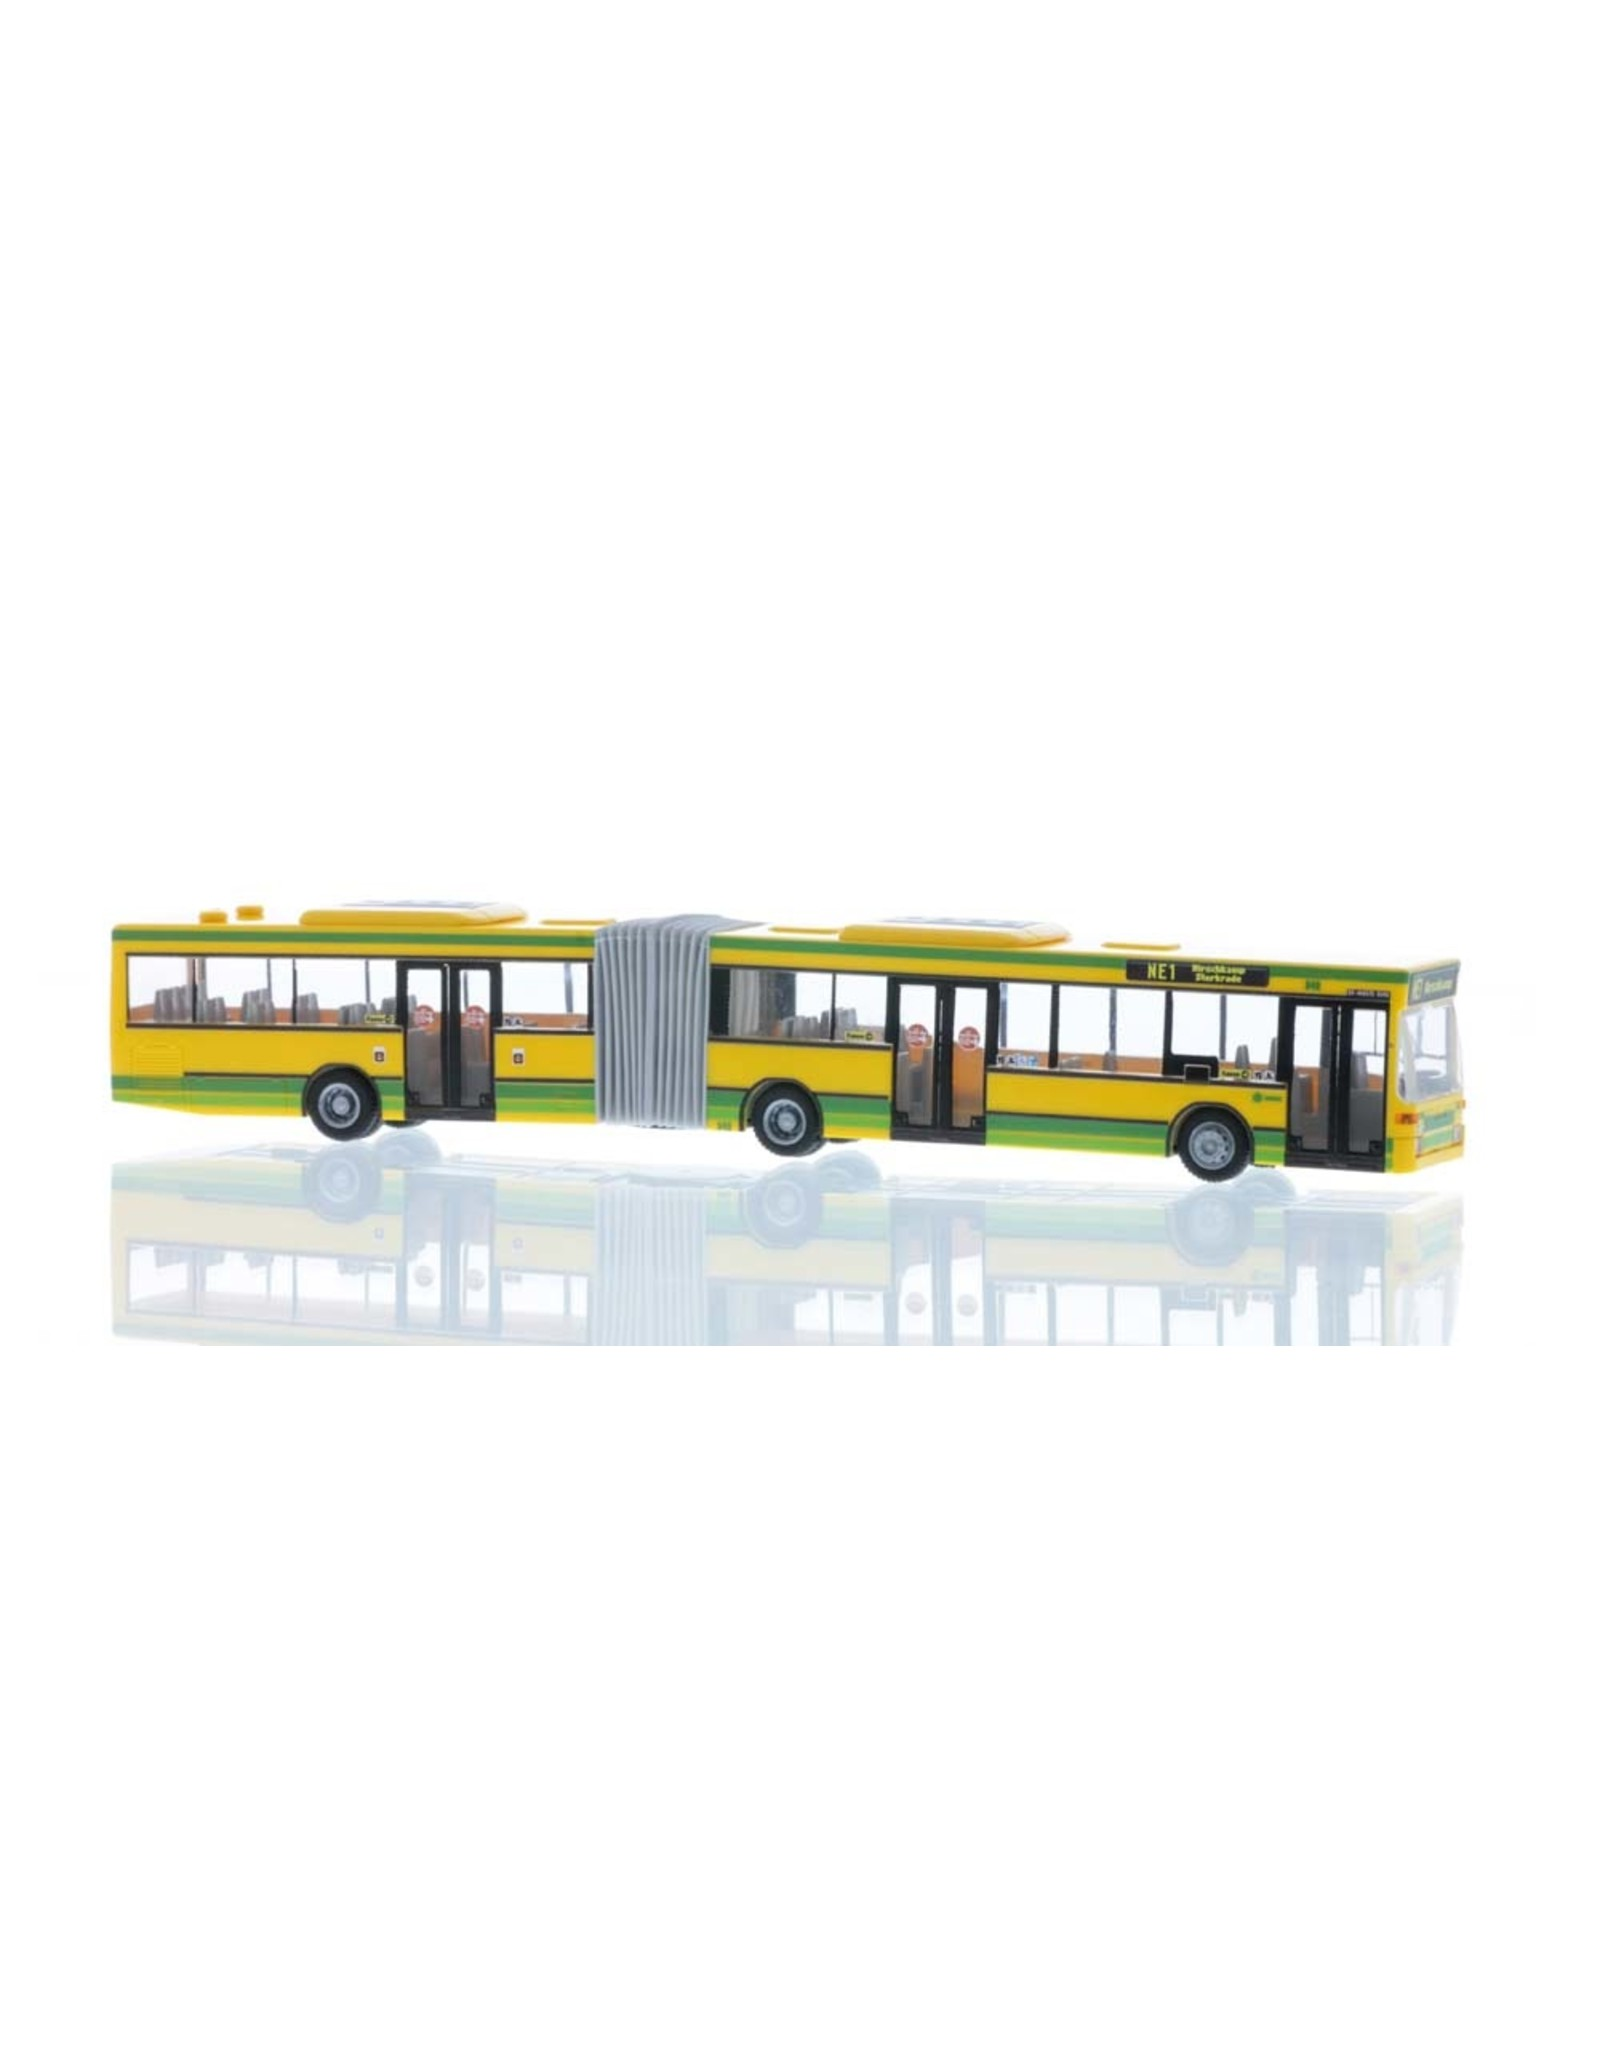 Mercedes-Benz Mercedes-Benz O 405 GN2 Stoag Oberhausen (Germany) - 1:87 - Rietze Automodelle